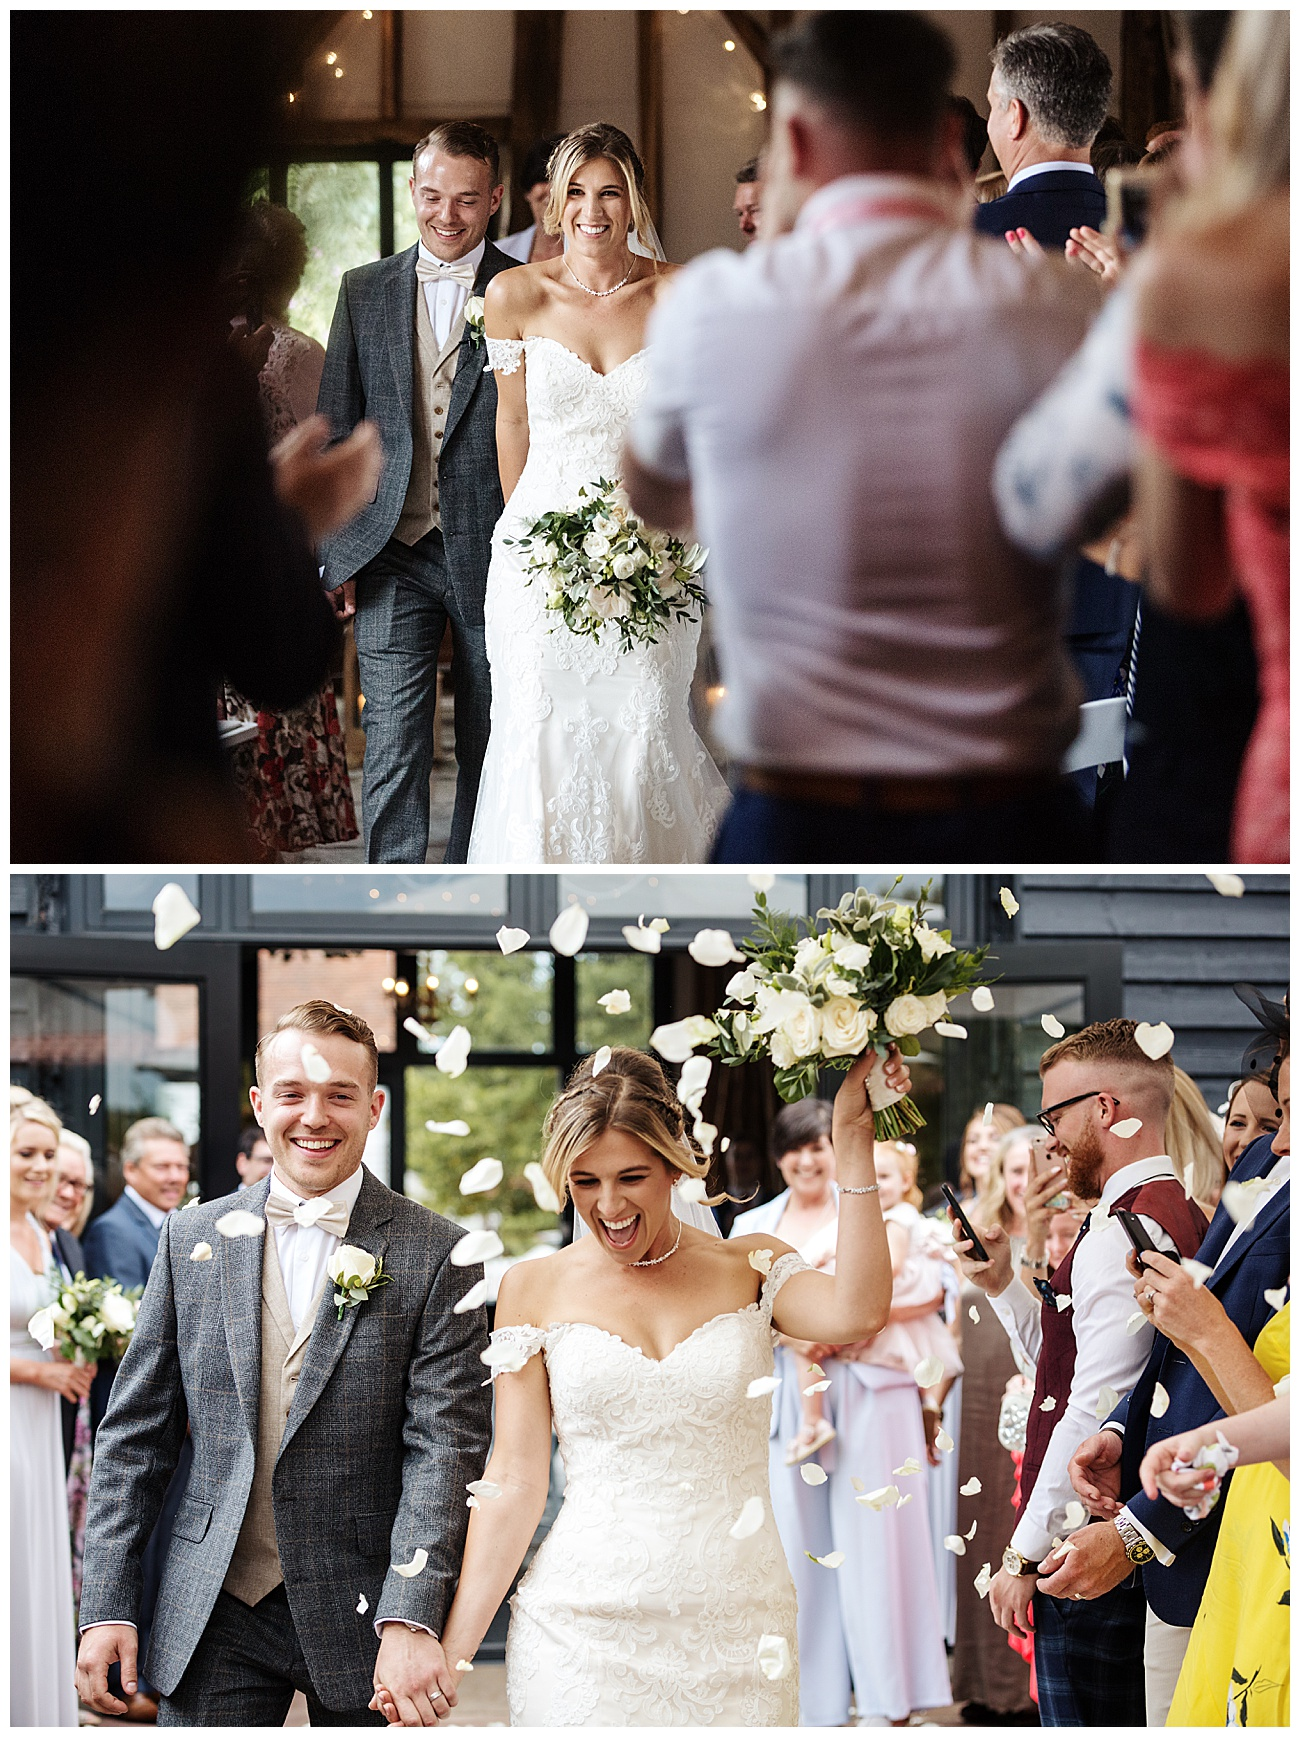 Confetti is thrown over the bride and groom as they walk past their guests